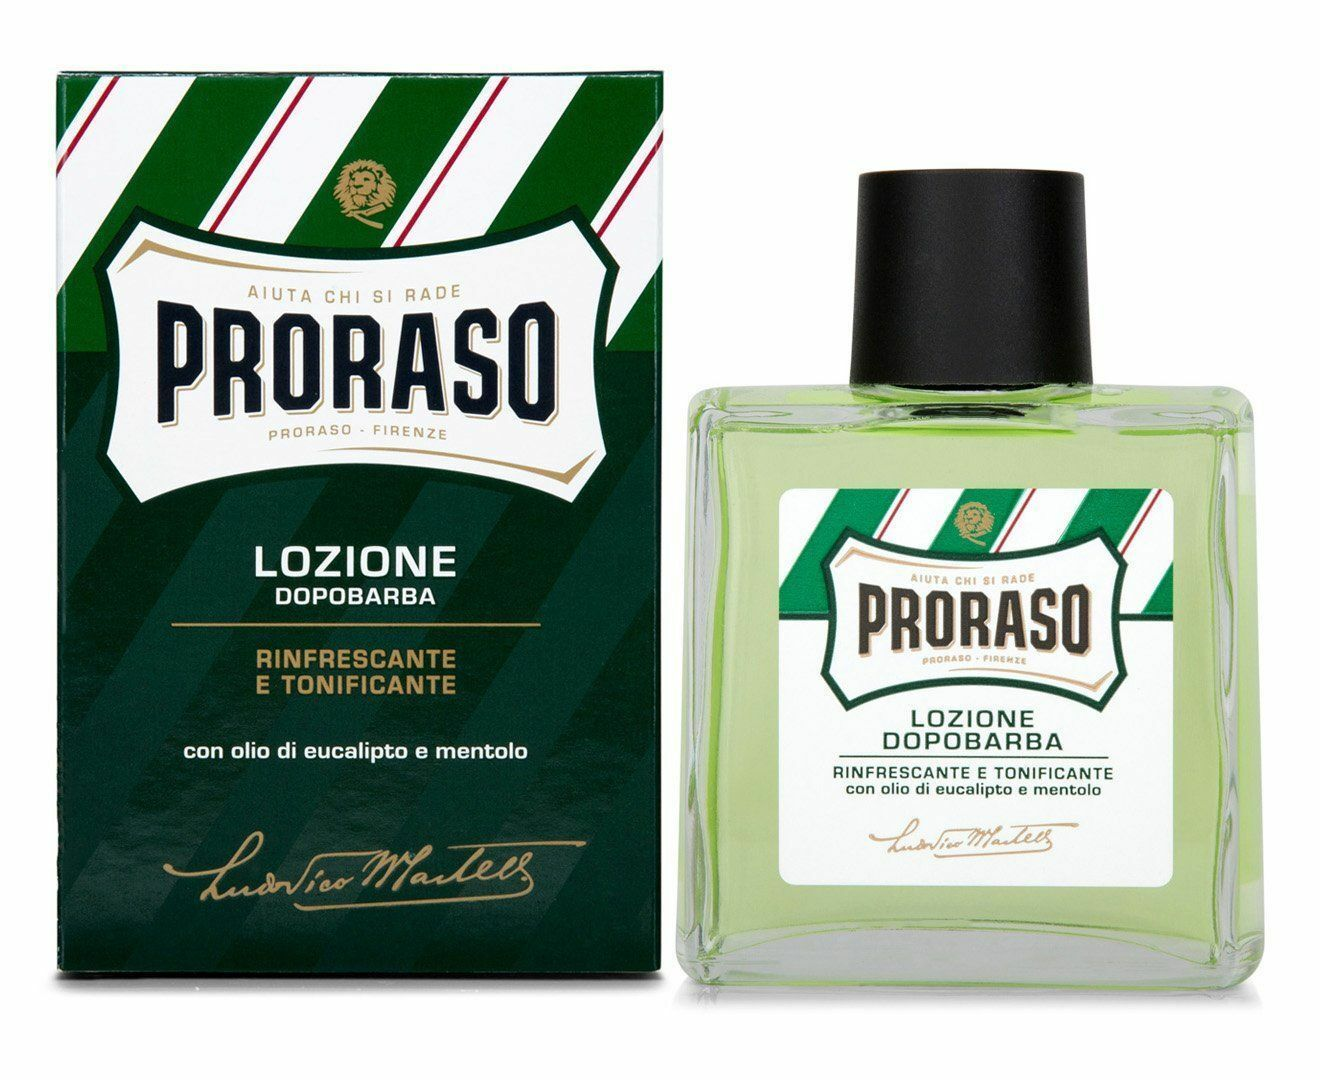 Proraso Refresh Aftershave Lotion, 3.4 oz